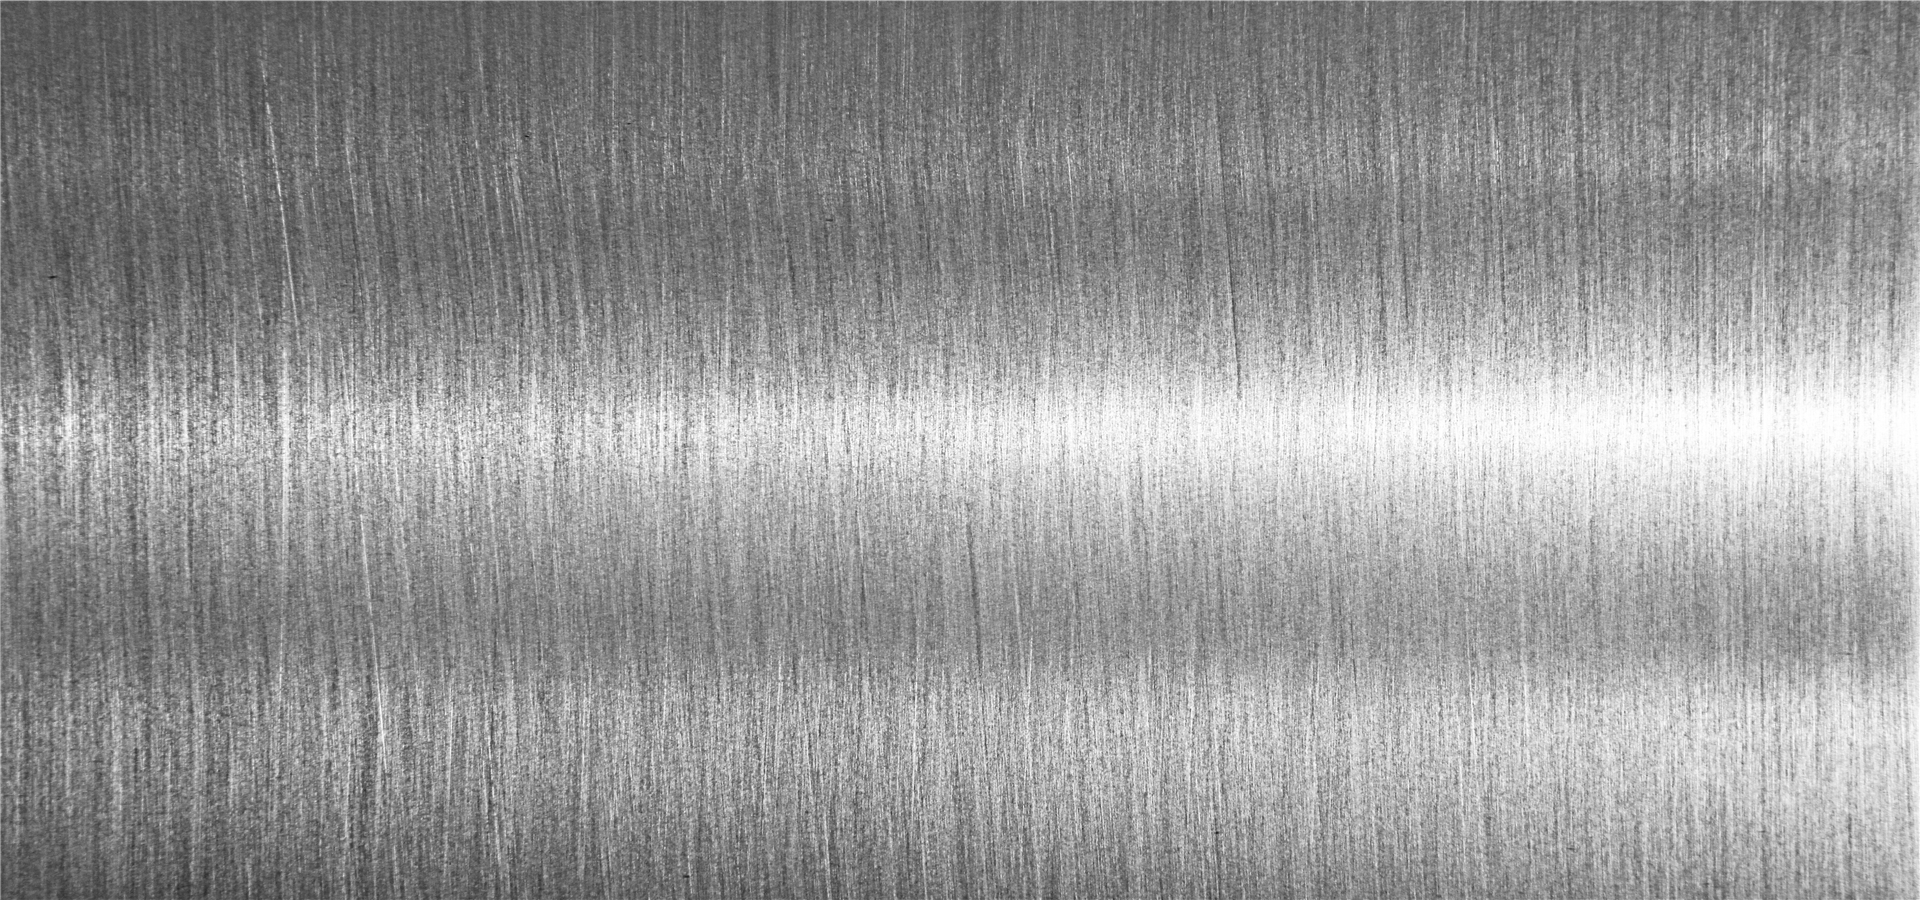 Purple Hearts Wedding Brushed Stainless Stee...